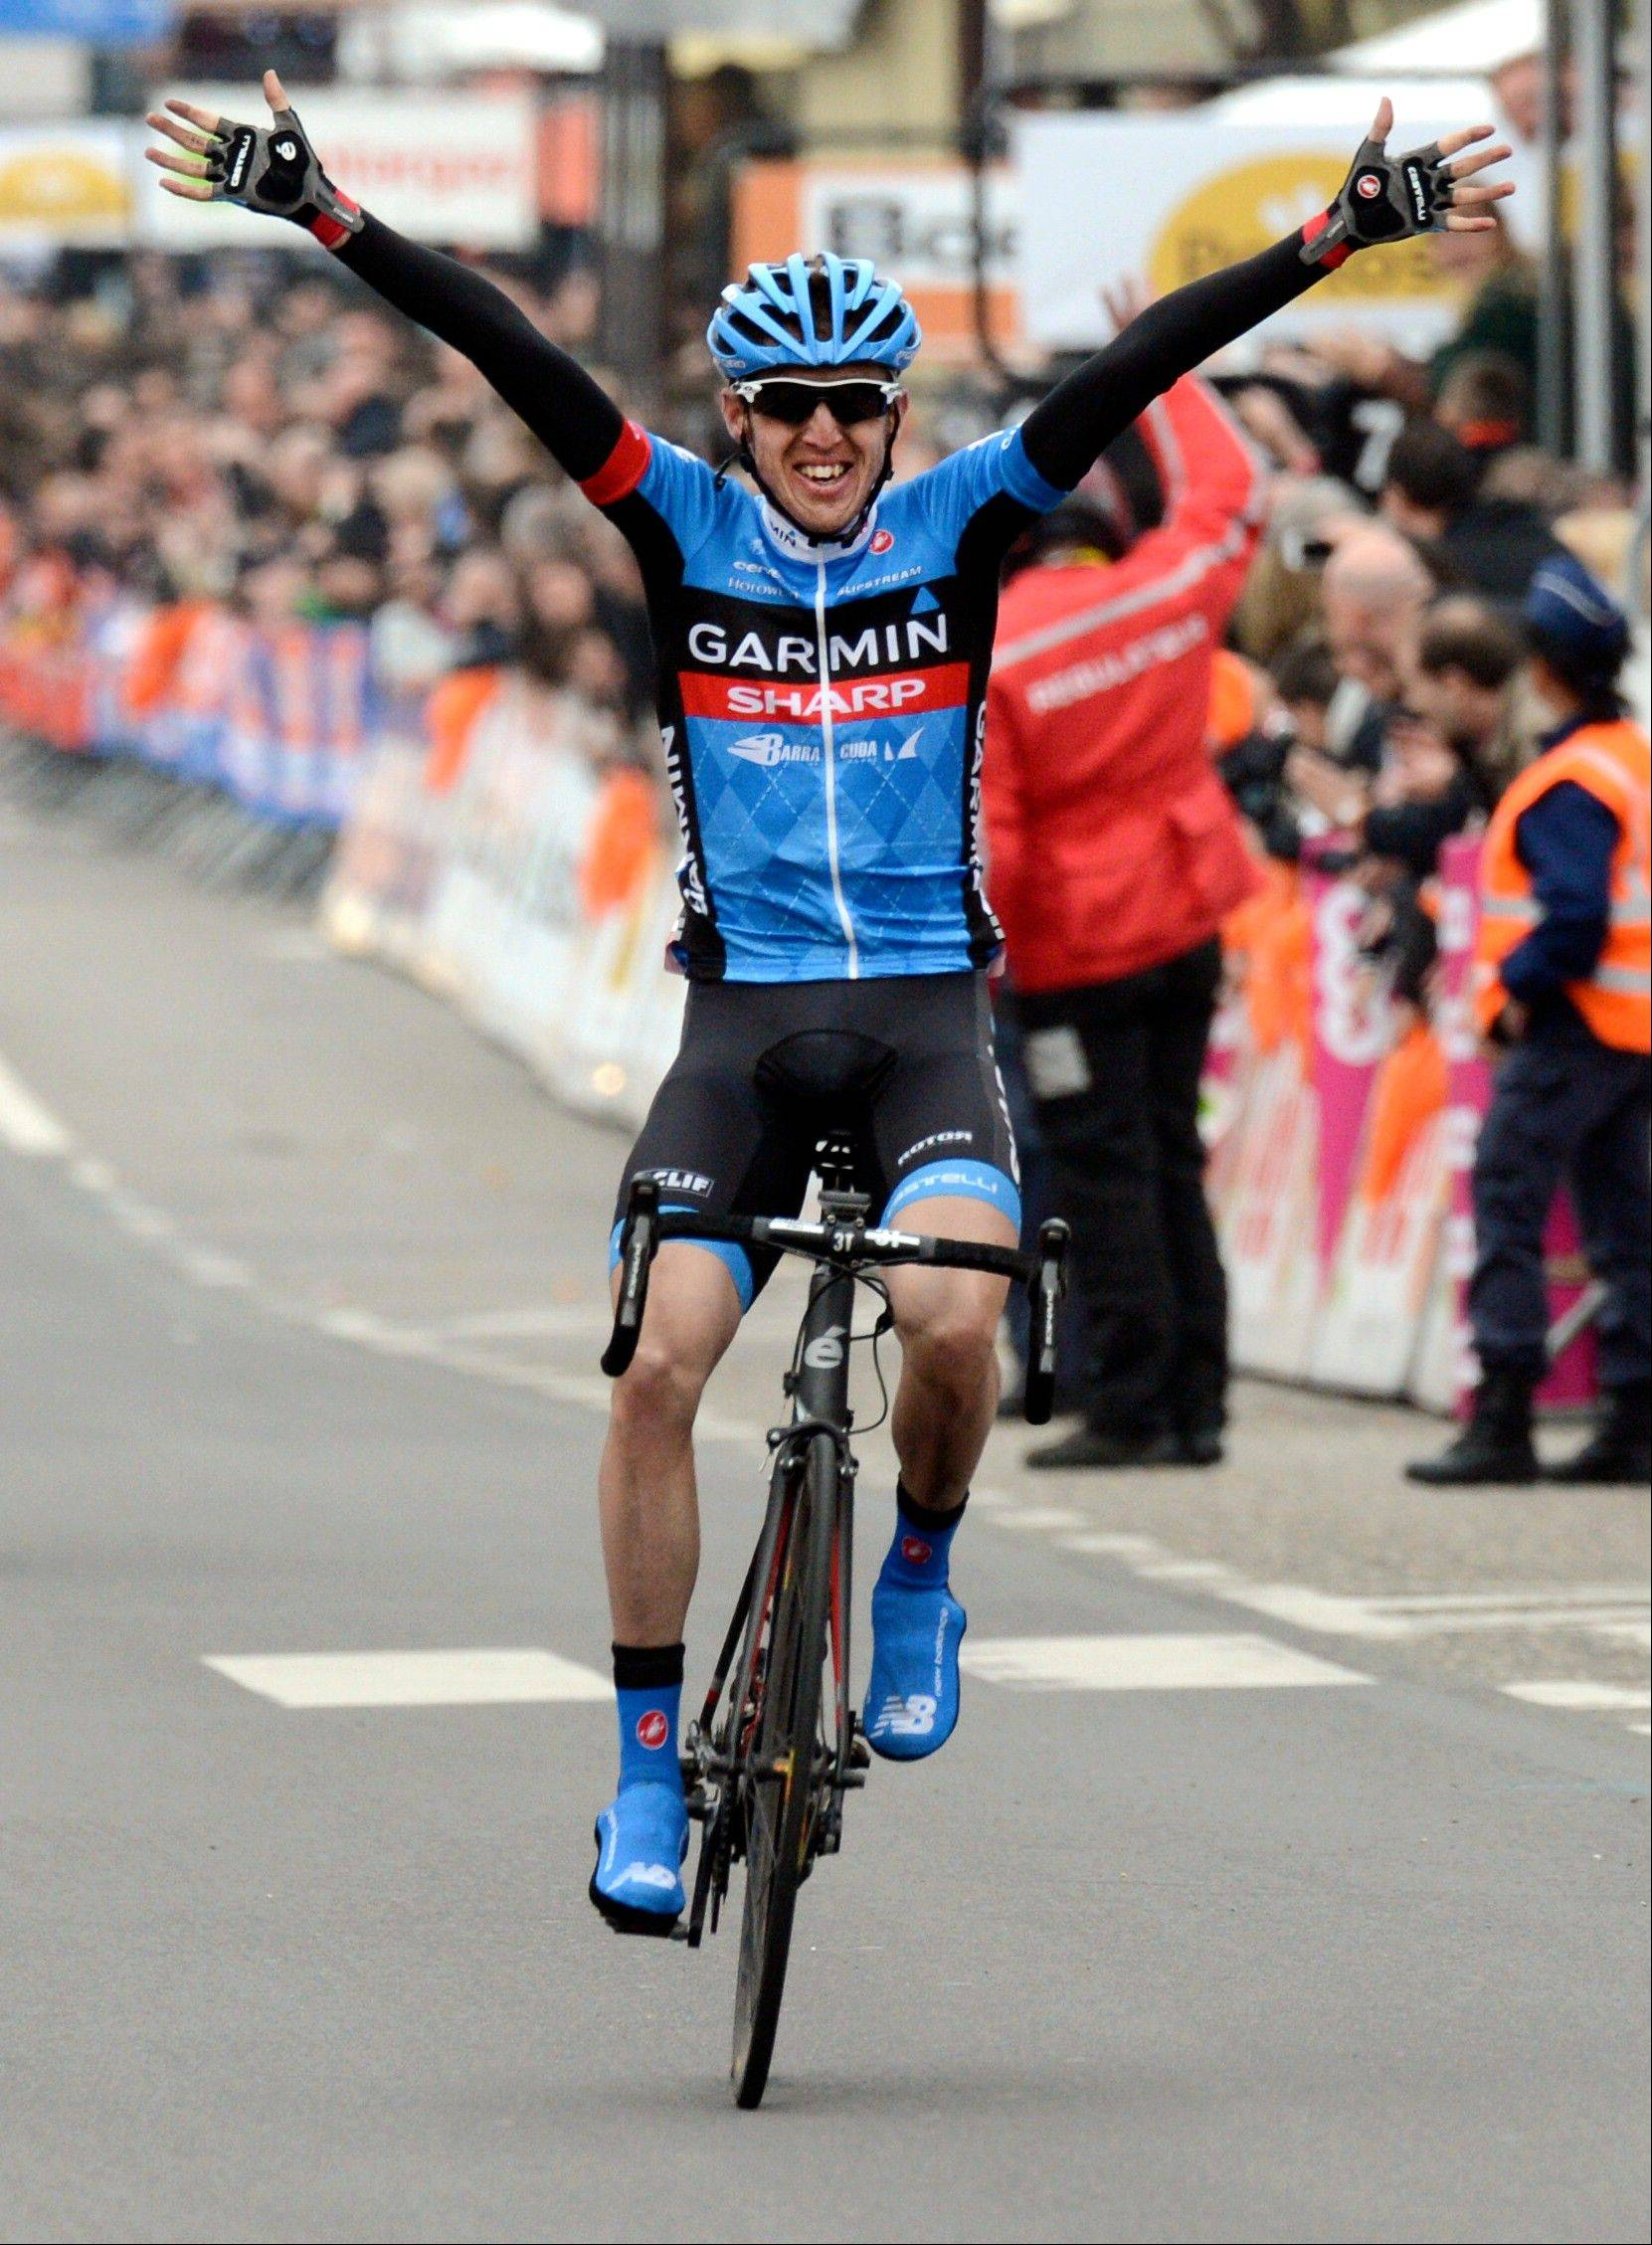 Daniel Martin of the Garmin-Sharp team celebrates Sunday as he crosses the finish line to win the Liege-Bastogne-Liege cycling classic in Belgium.